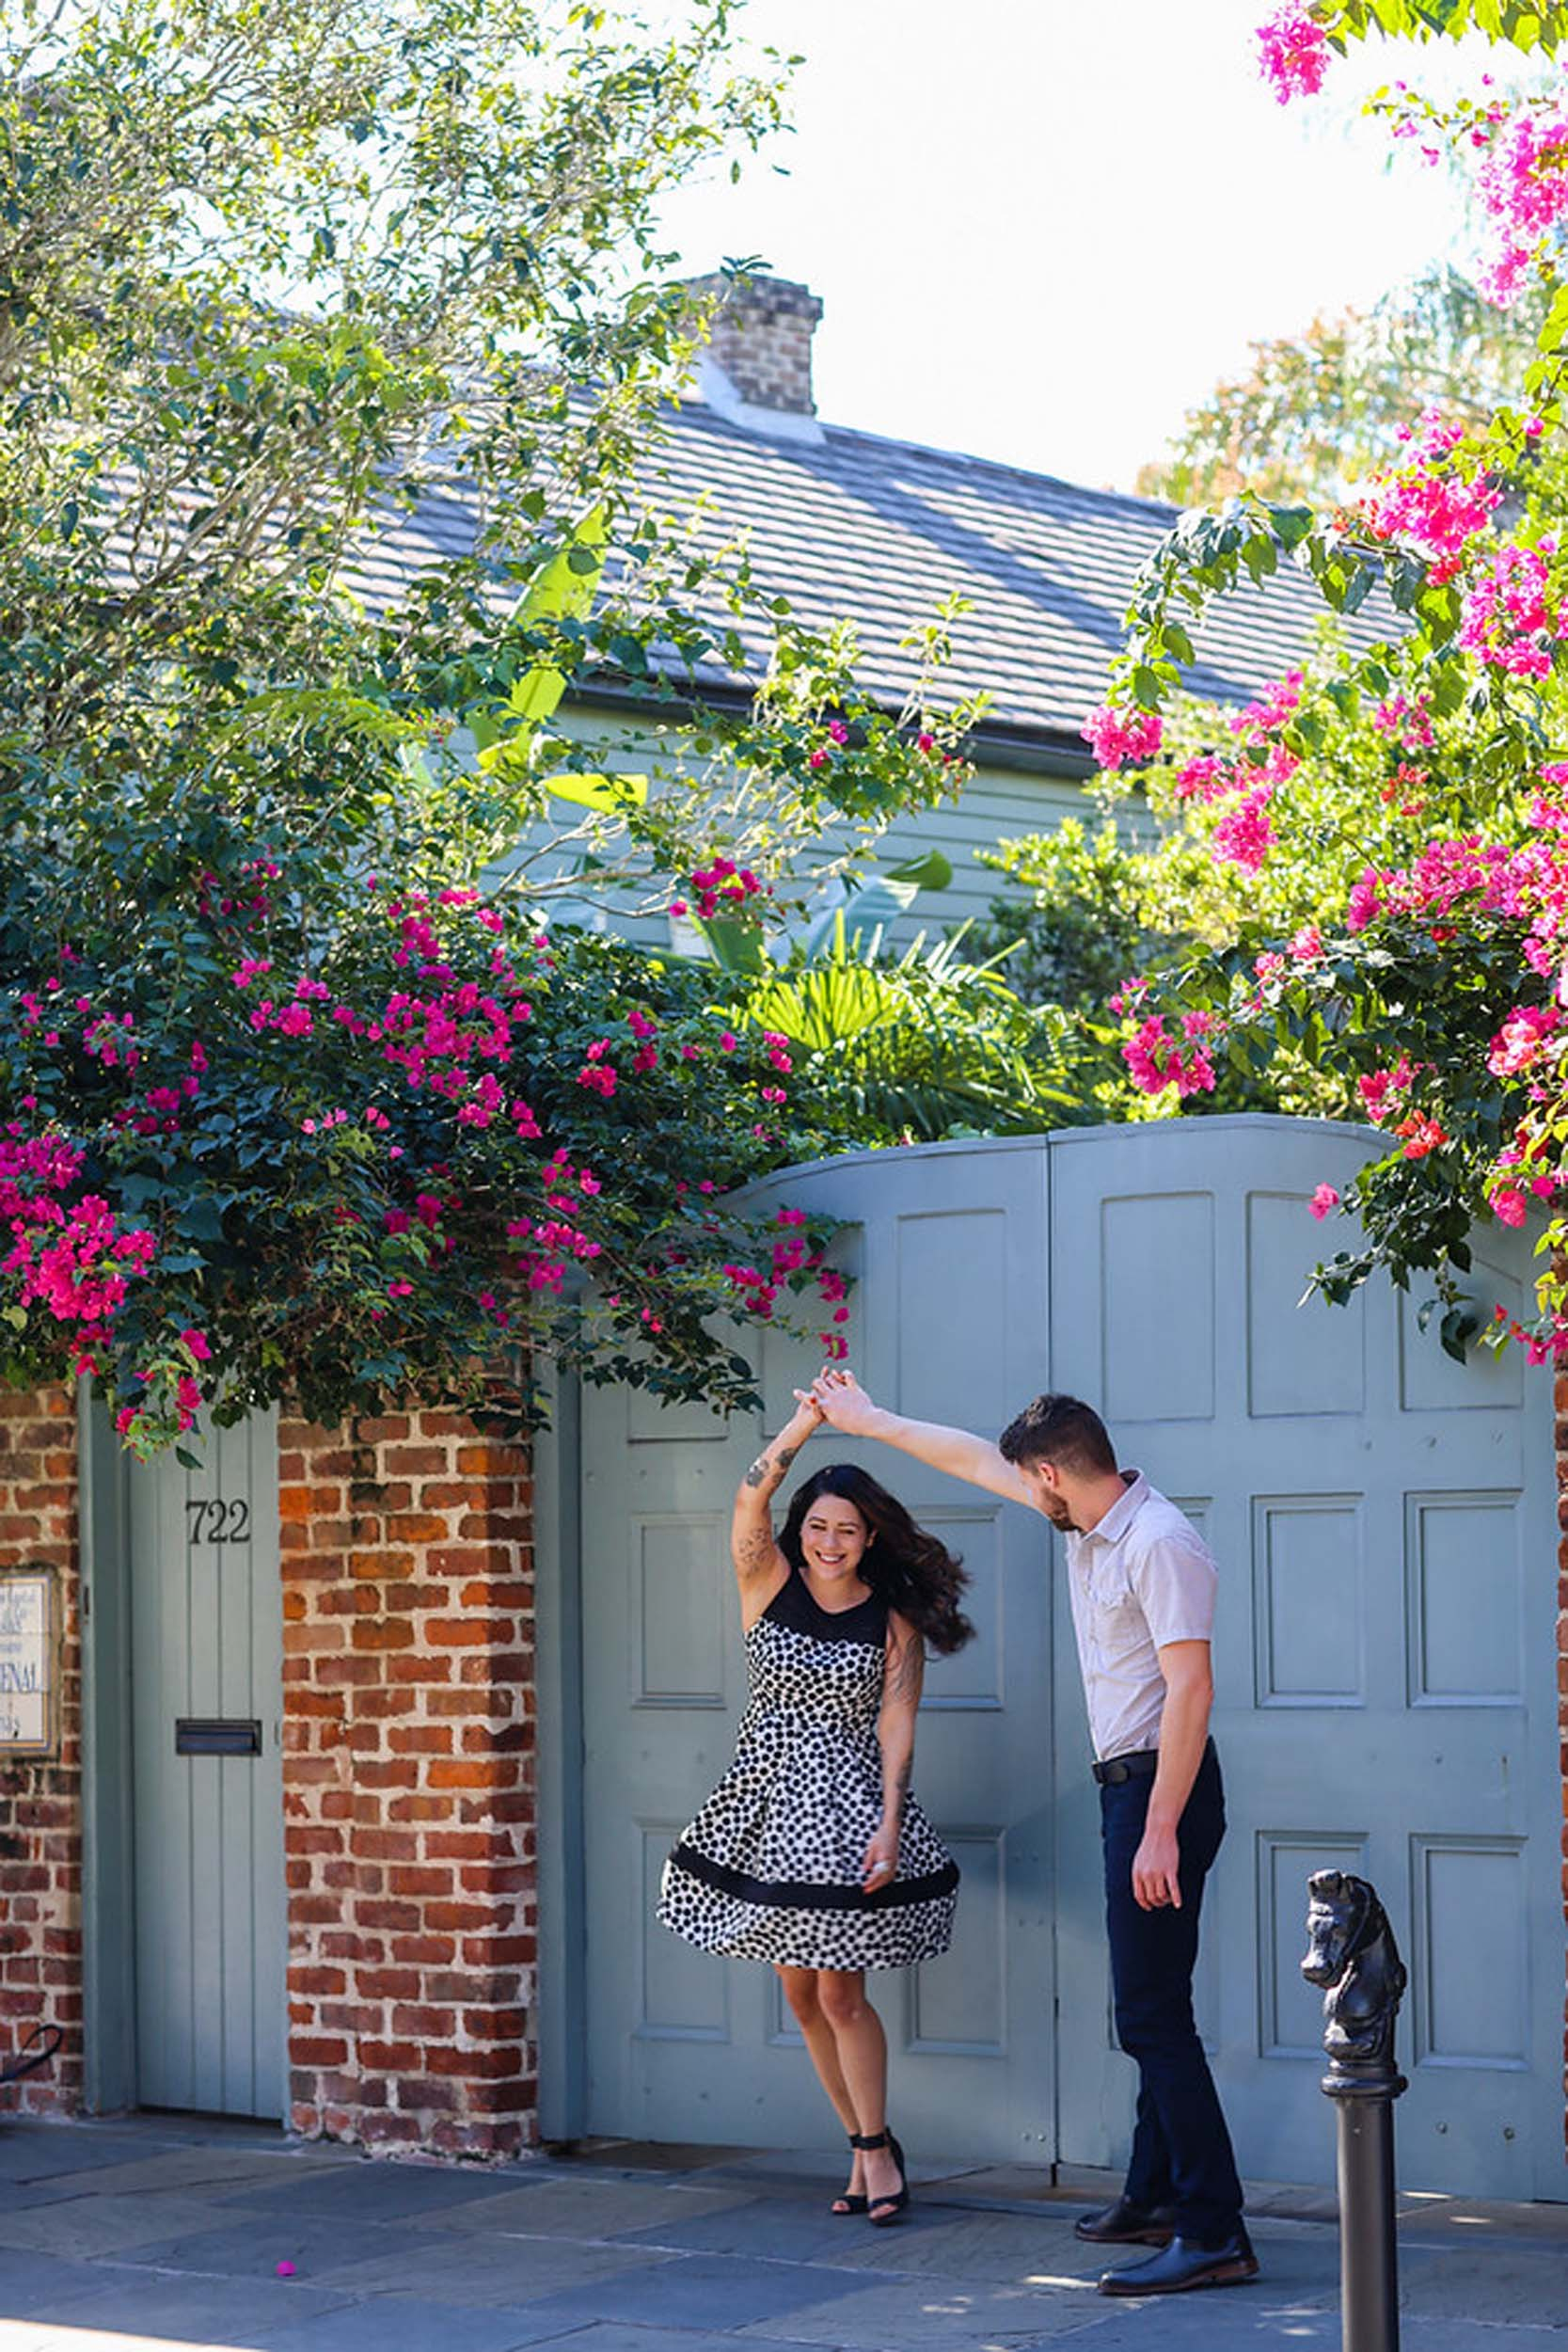 Couple dancing together in alleyway on a couples trip to New Orleans, USA